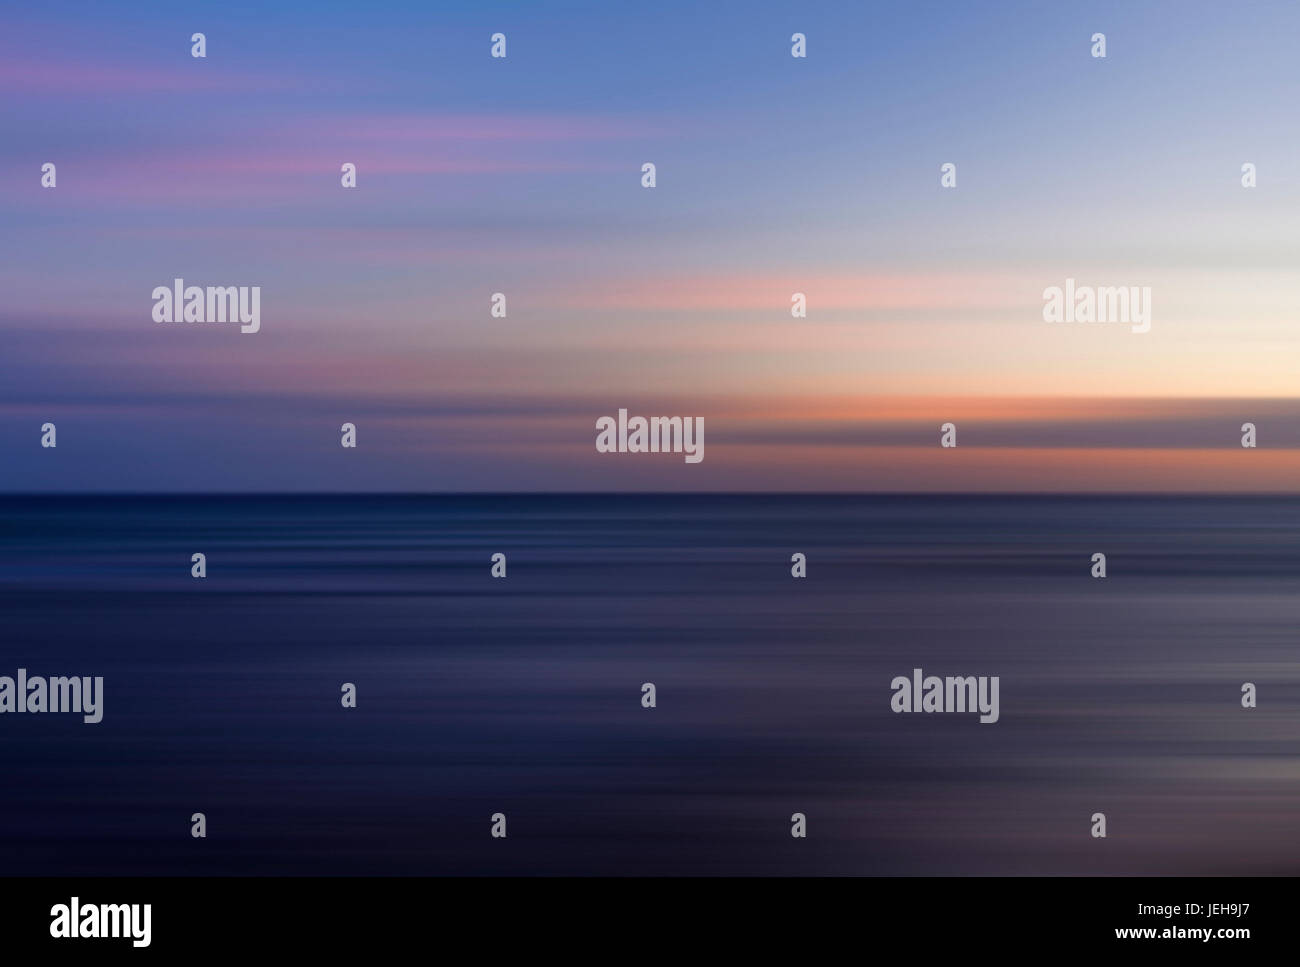 Beautiful colourful oceanscape lines during sunset in long exposure; Honolulu, Oahu, Hawaii, United States of America - Stock Image